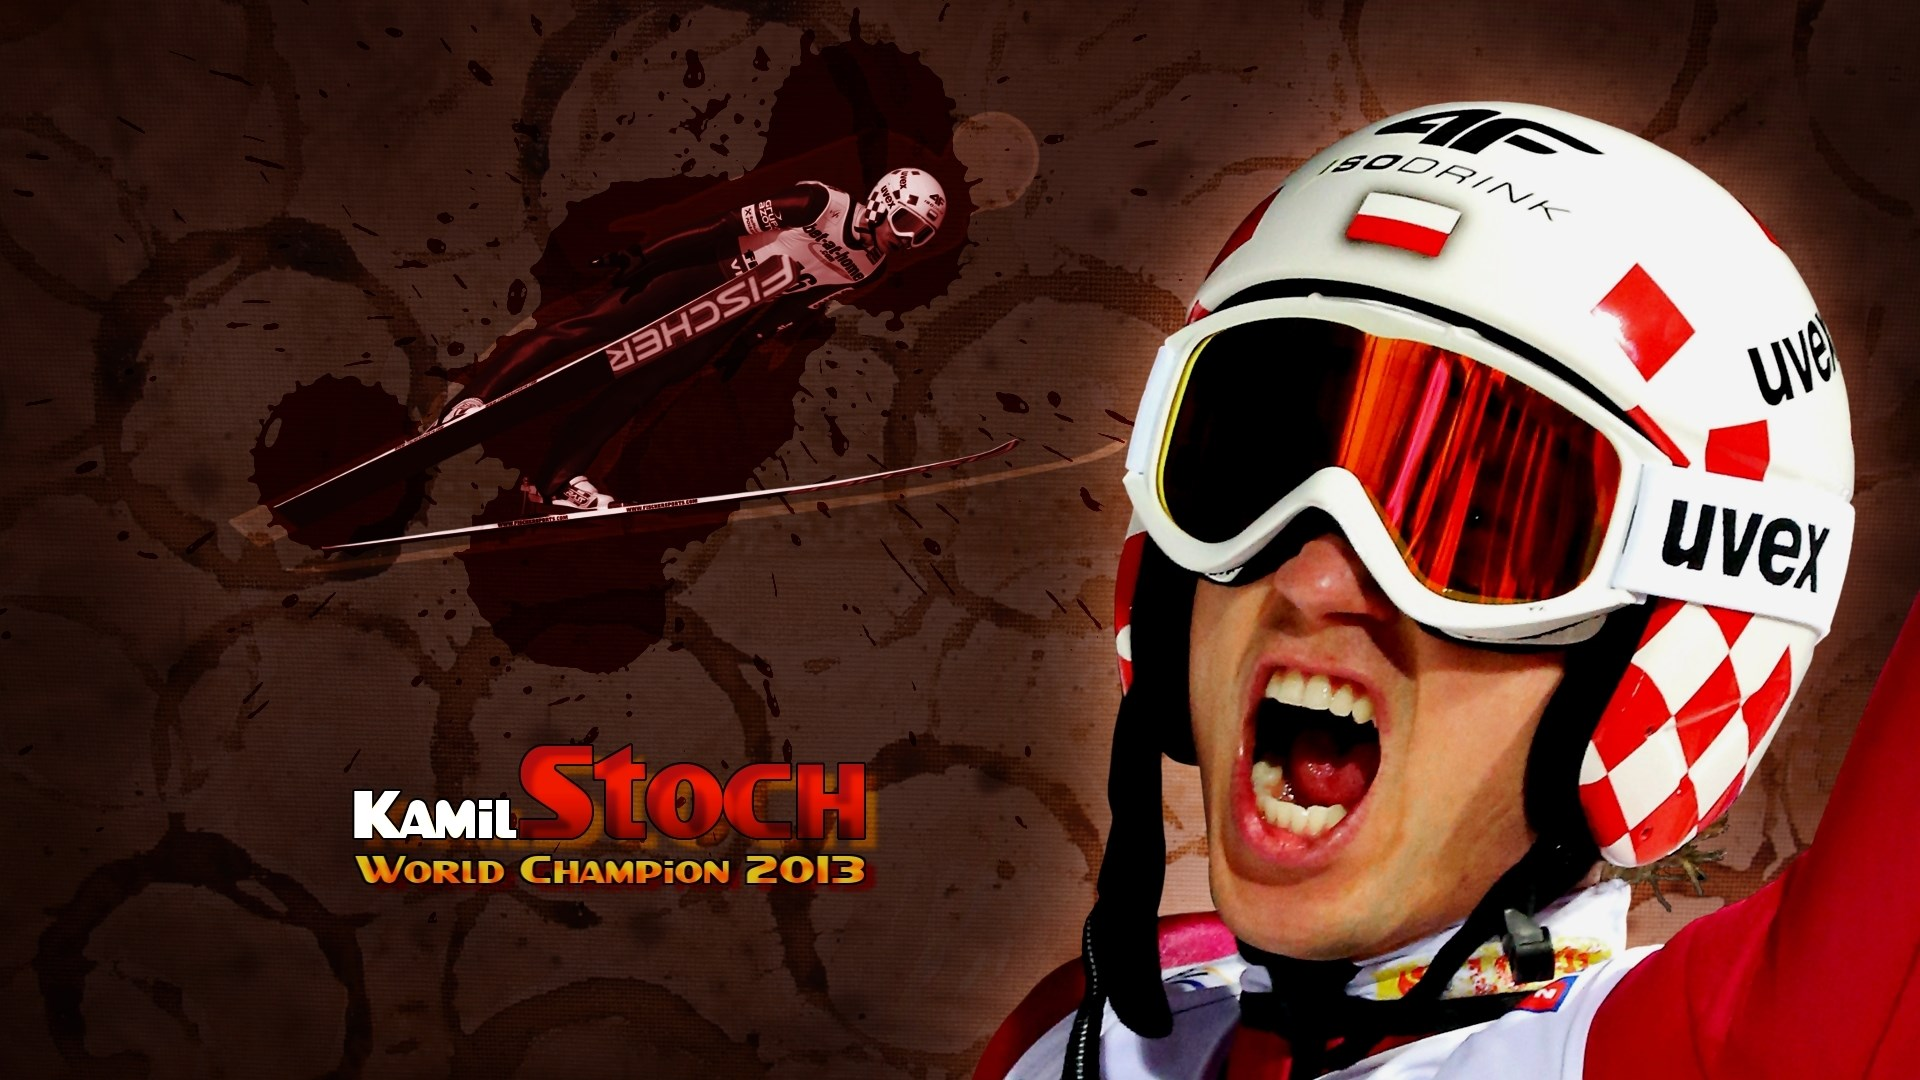 1920x1080 - Kamil Stoch Wallpapers 26